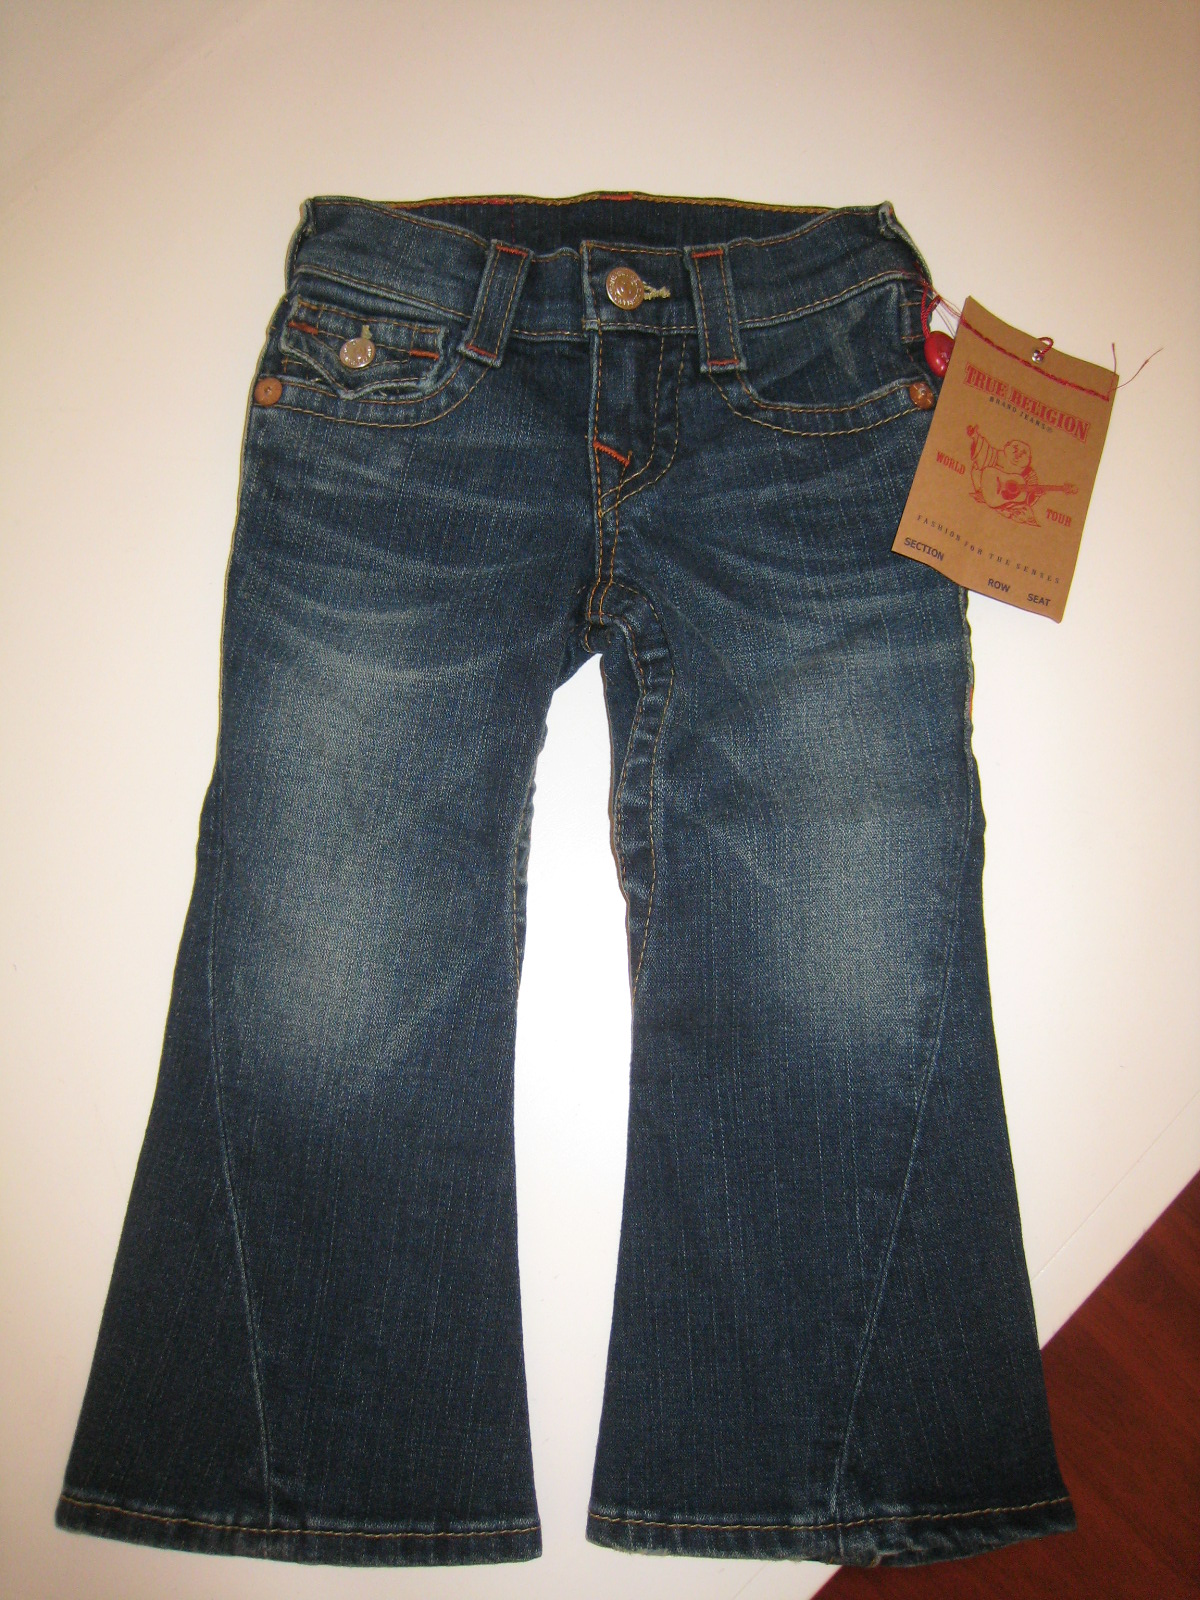 Boys' Jeans That Stand Up to Any Adventure. Boys' jeans feature a durable cotton twill textile that's ideal for any season. Whether boys are exploring the outdoors during spring and summer or bundling up in the cooler months, the diagonal weft thread weave used to make denim fabric lasts a long time.